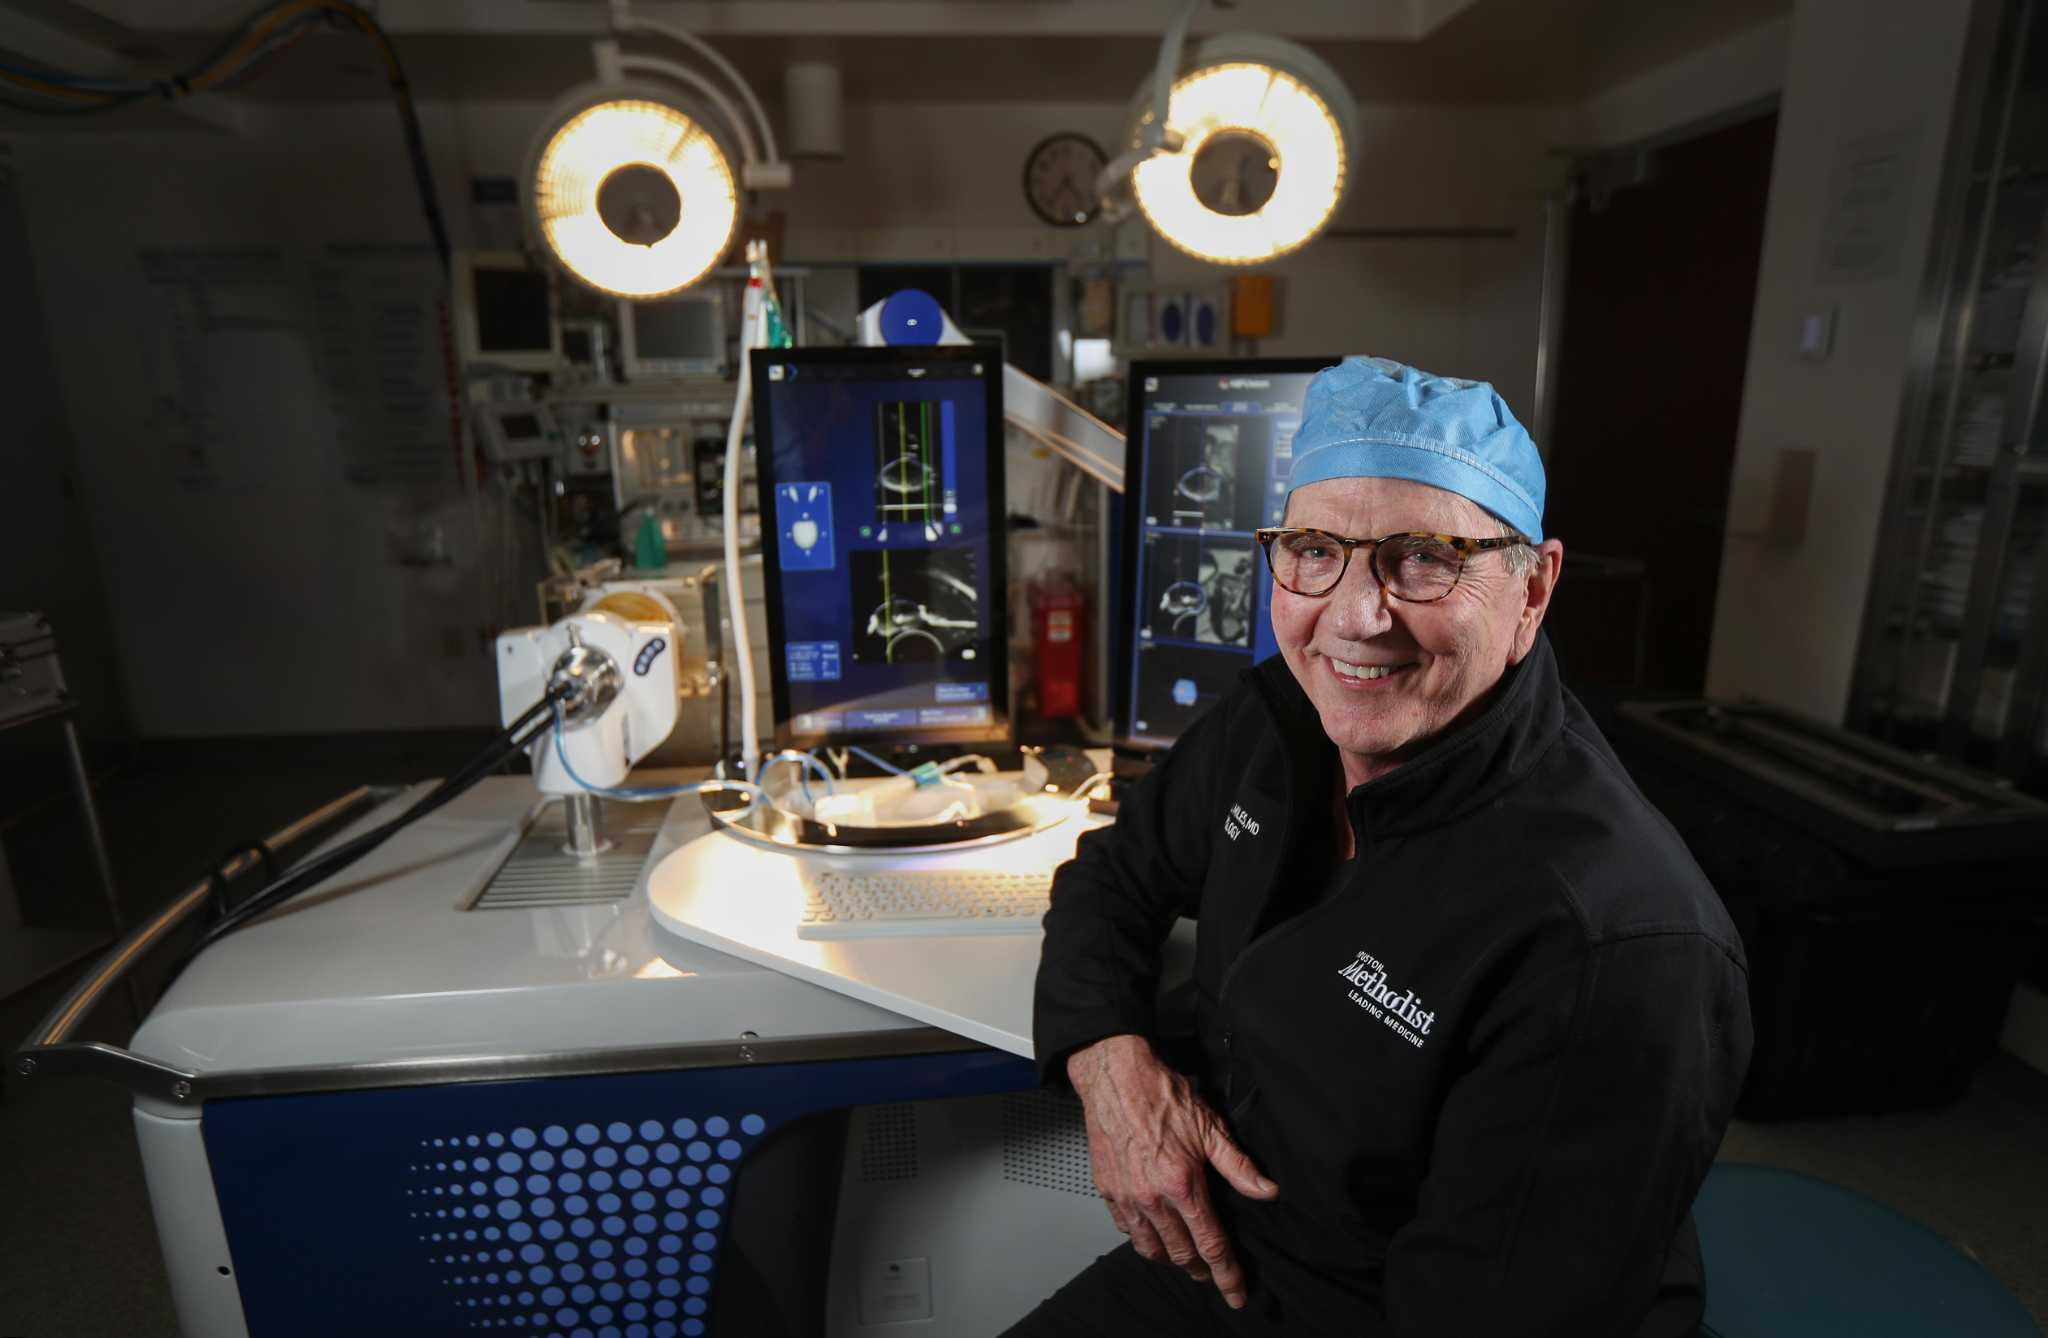 Now there's a noninvasive treatment for prostate cancer: high-intensity focused ultrasound